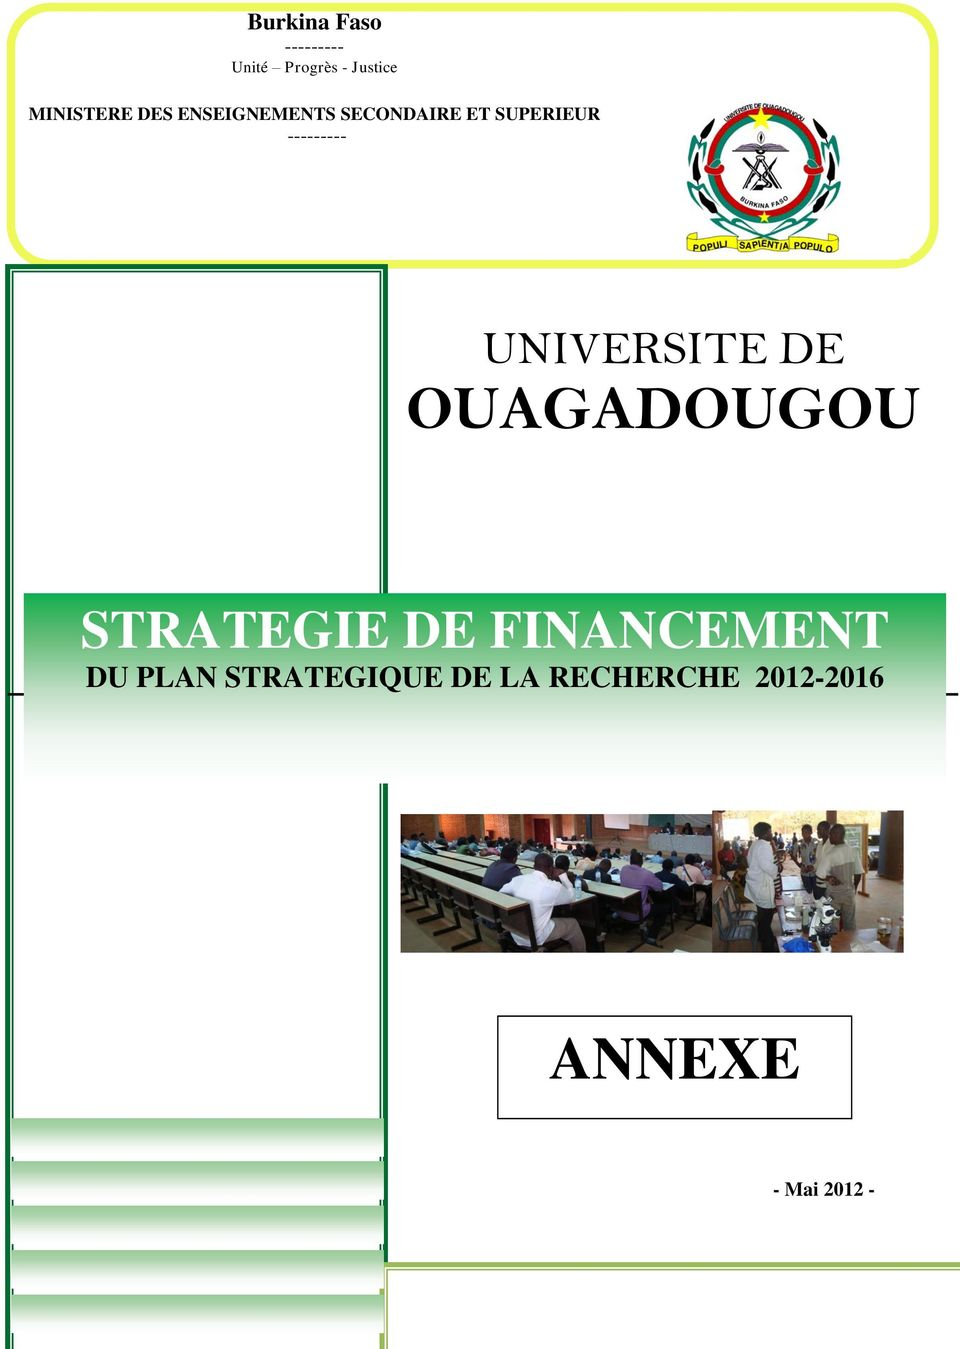 UNIVERSITE DE OUAGADOUGOU STRATEGIE DE FINANCEMENT DU